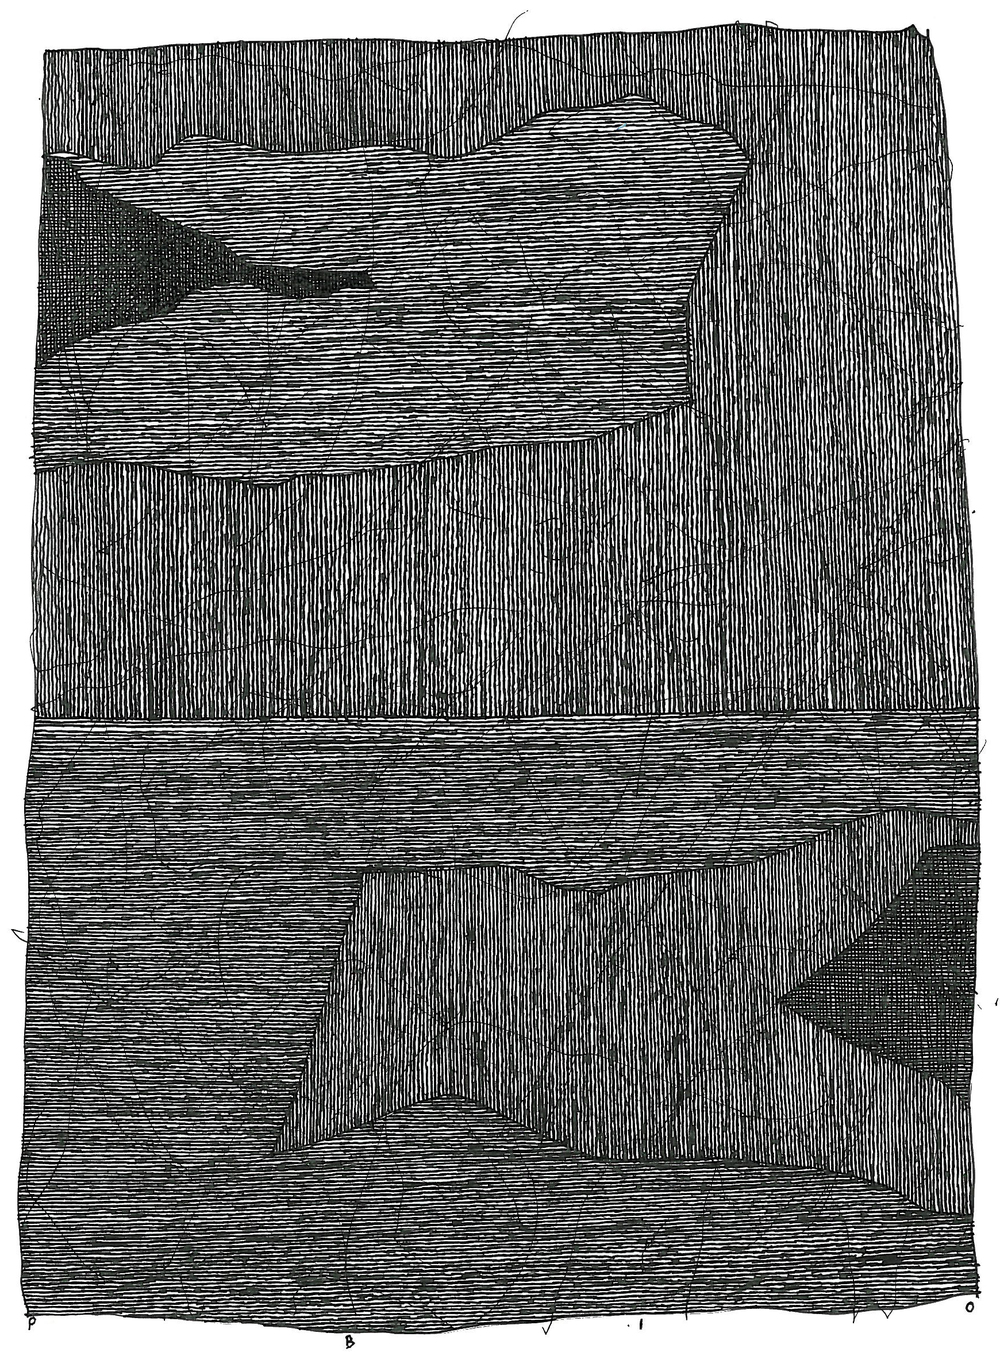 "Pen and Ink - 5.5"" x 7.5"" - 2010"